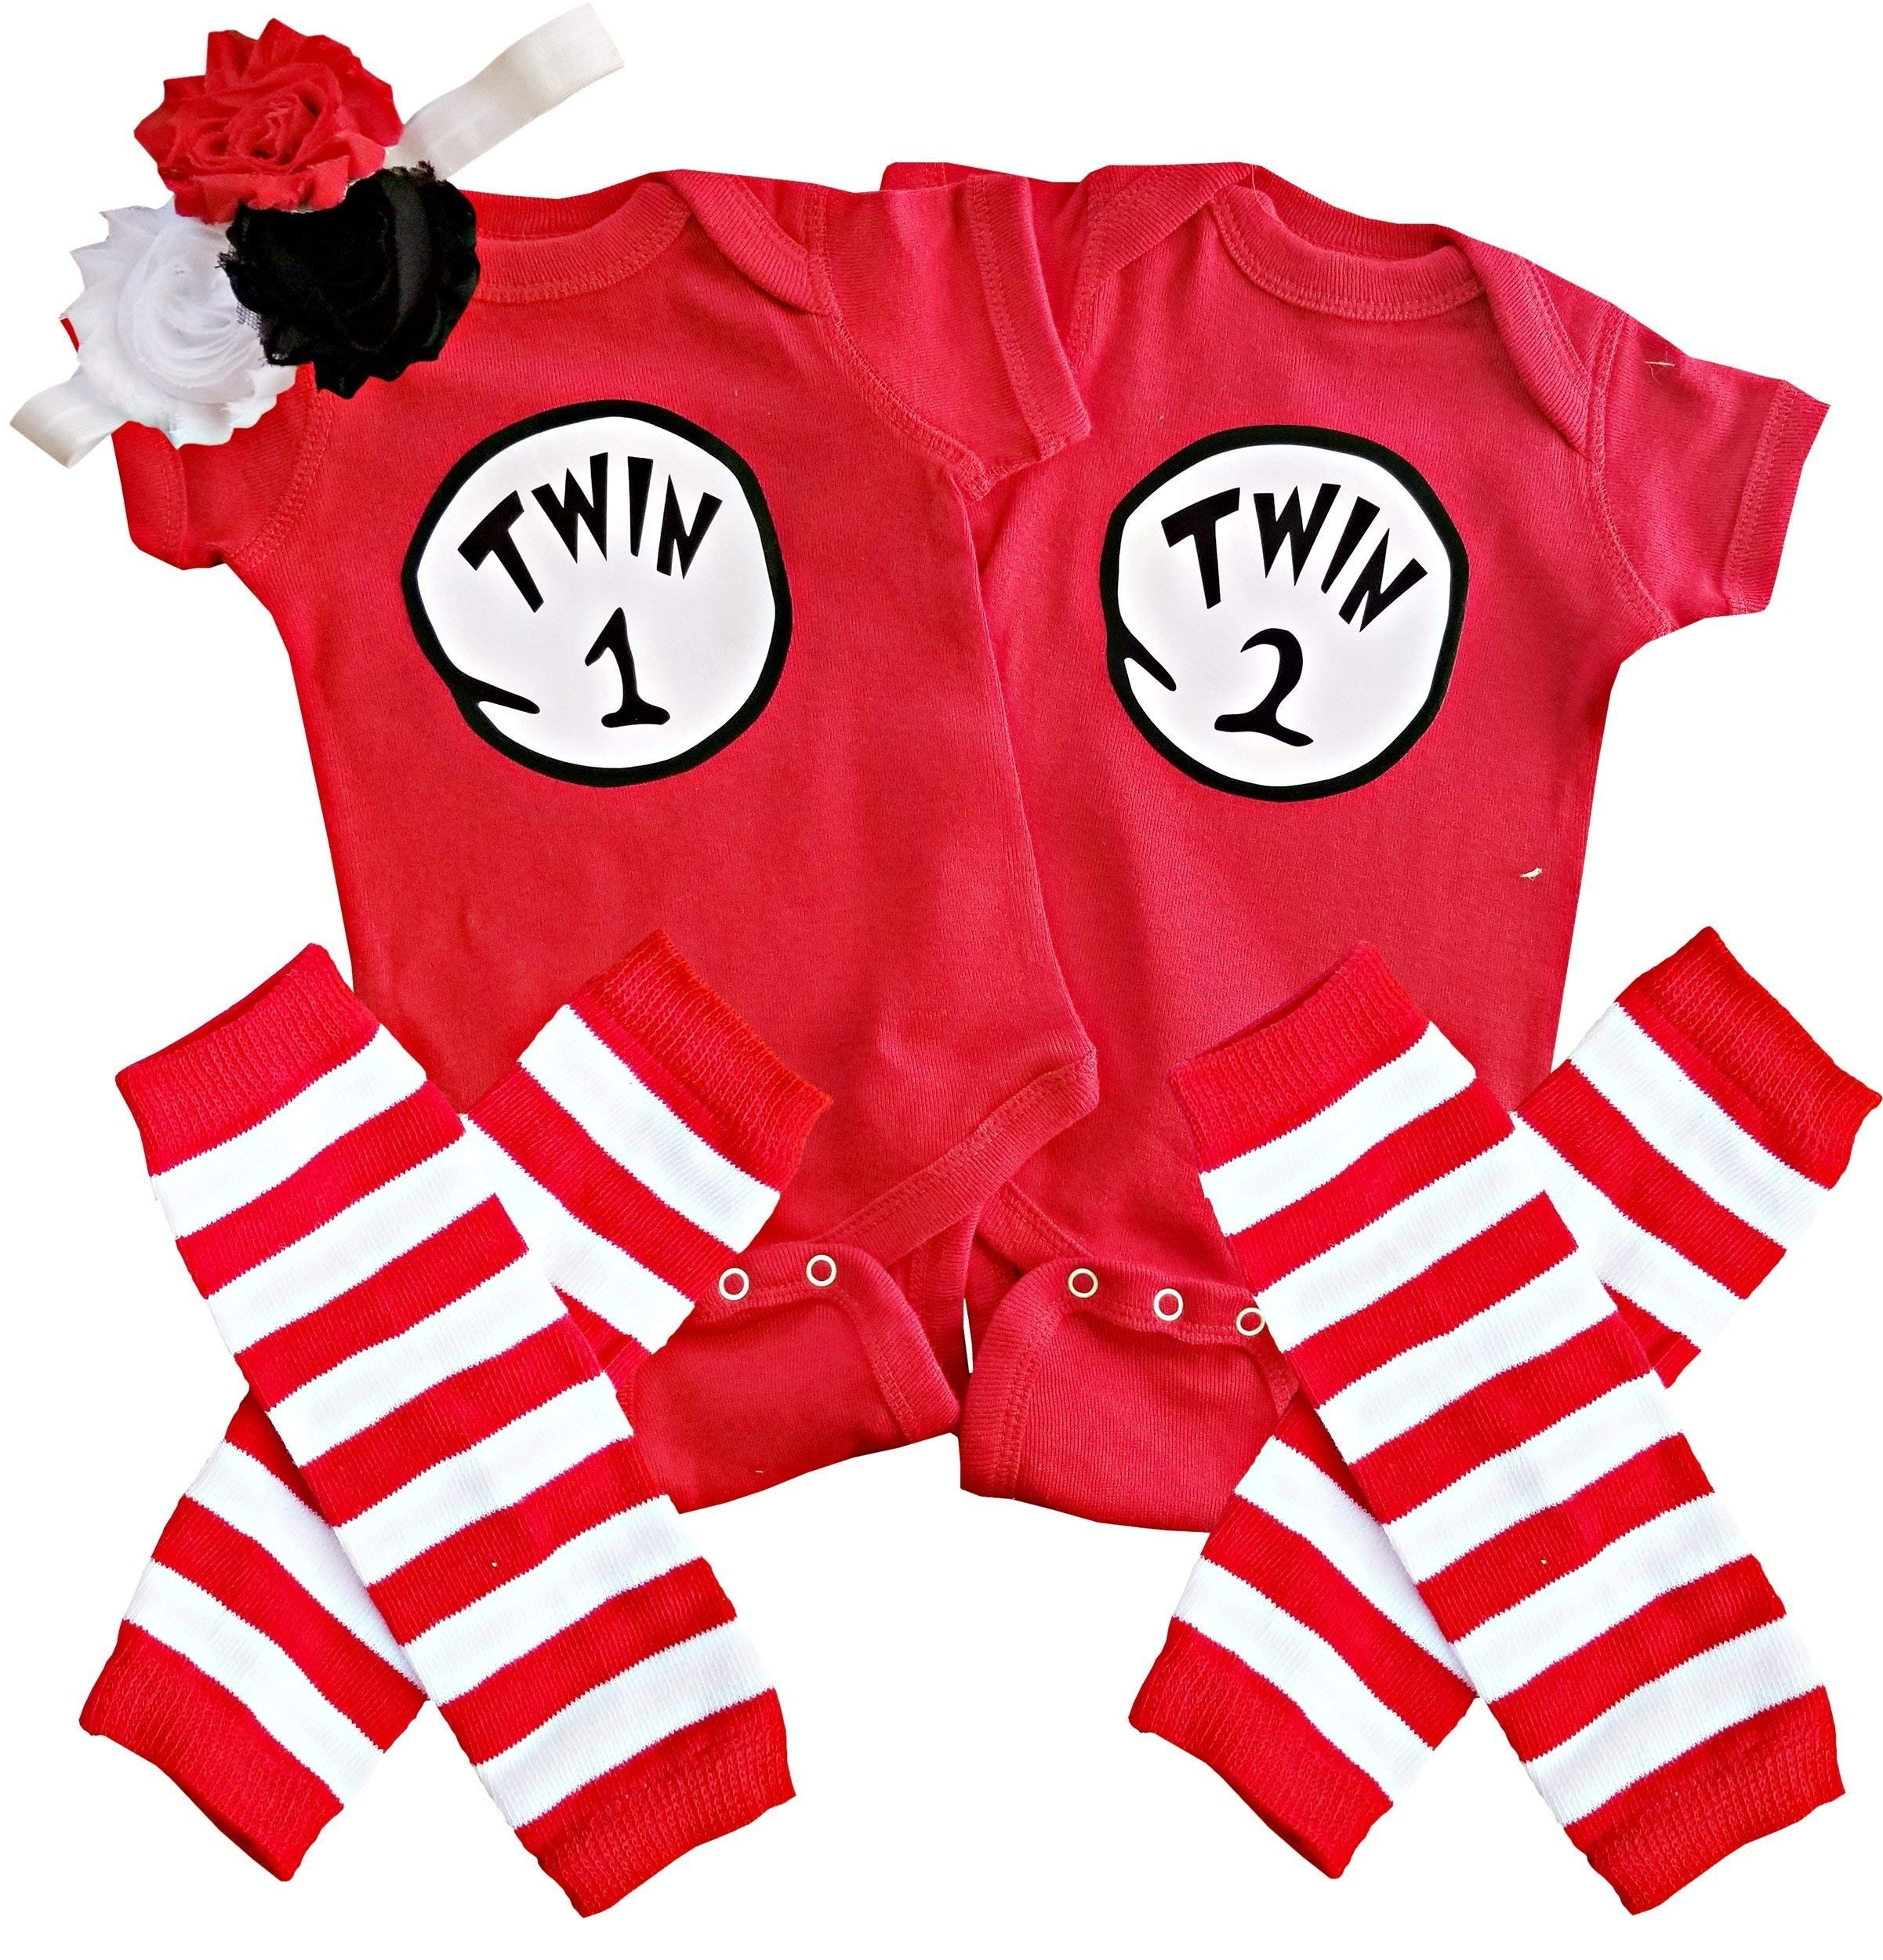 Perfect Pairz Boy Girl Unisex Twin Outfits Twin 1 Twin 2 (w/Leggings)(6M Long Sleeve) by Perfect Pairz